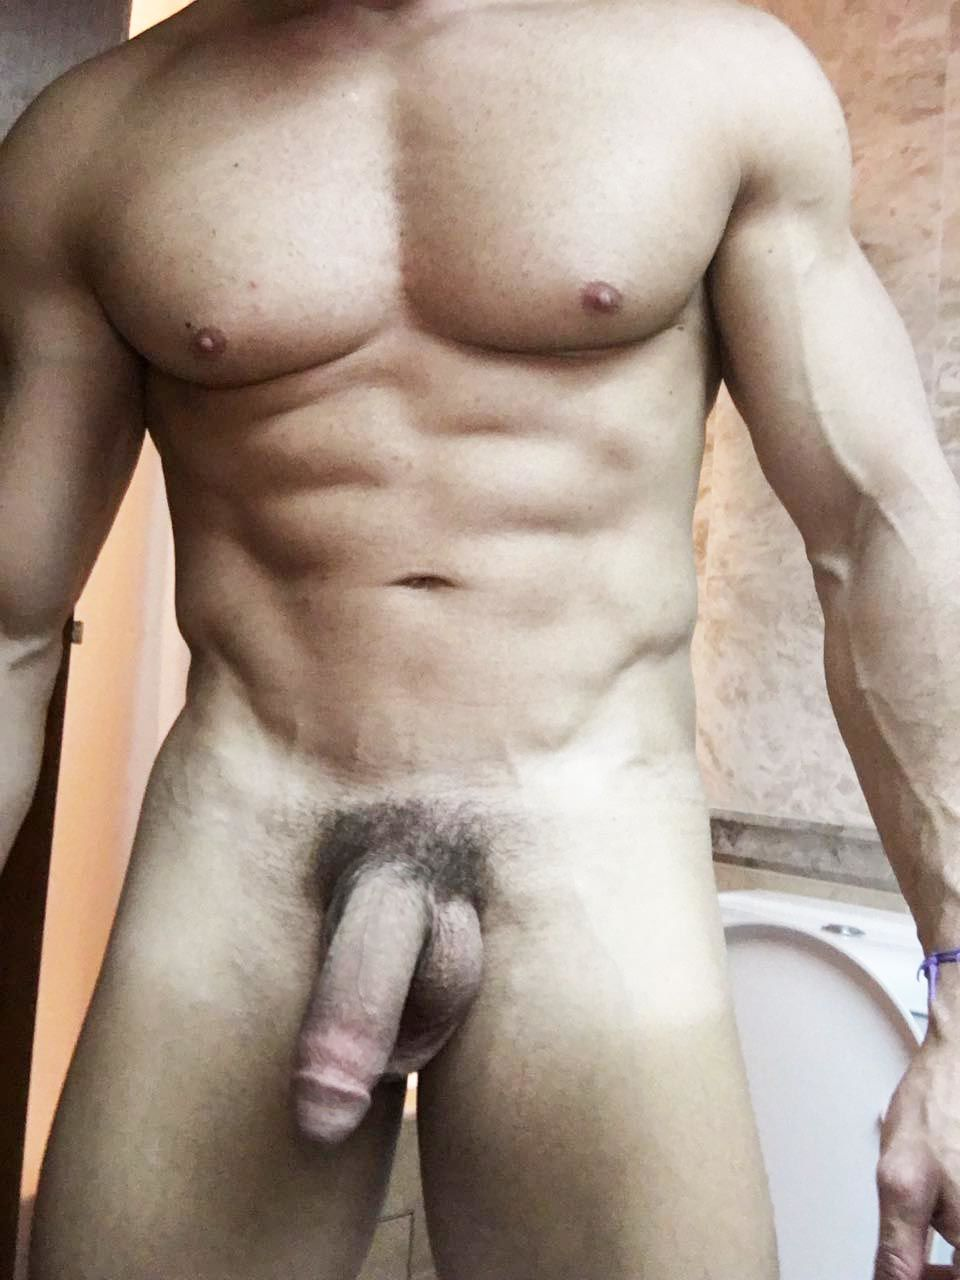 m escort gay escort massage